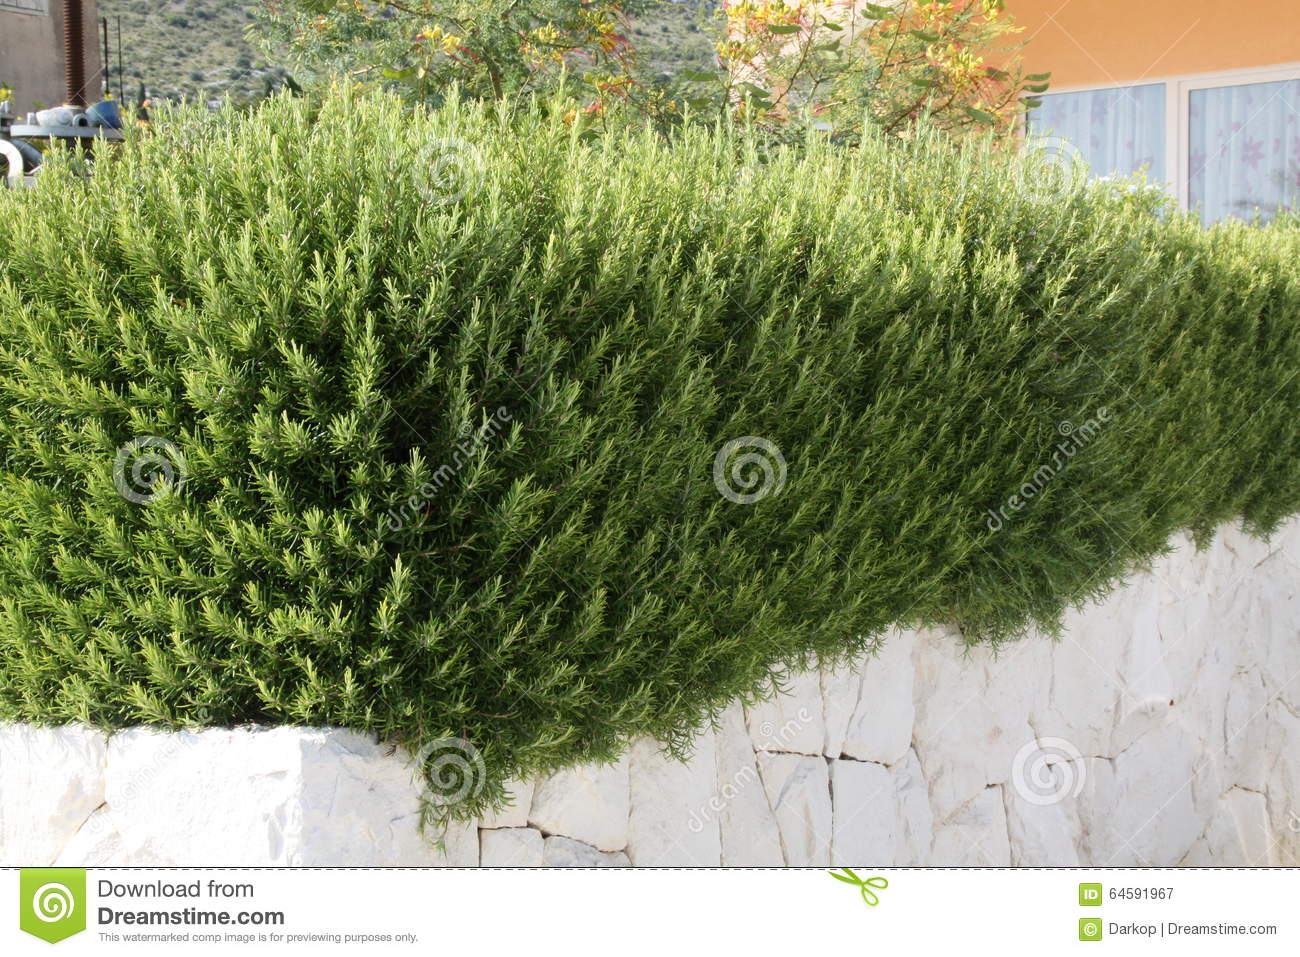 Rosemary In A Mediterranean Garden Stock Image - Image: 64591967